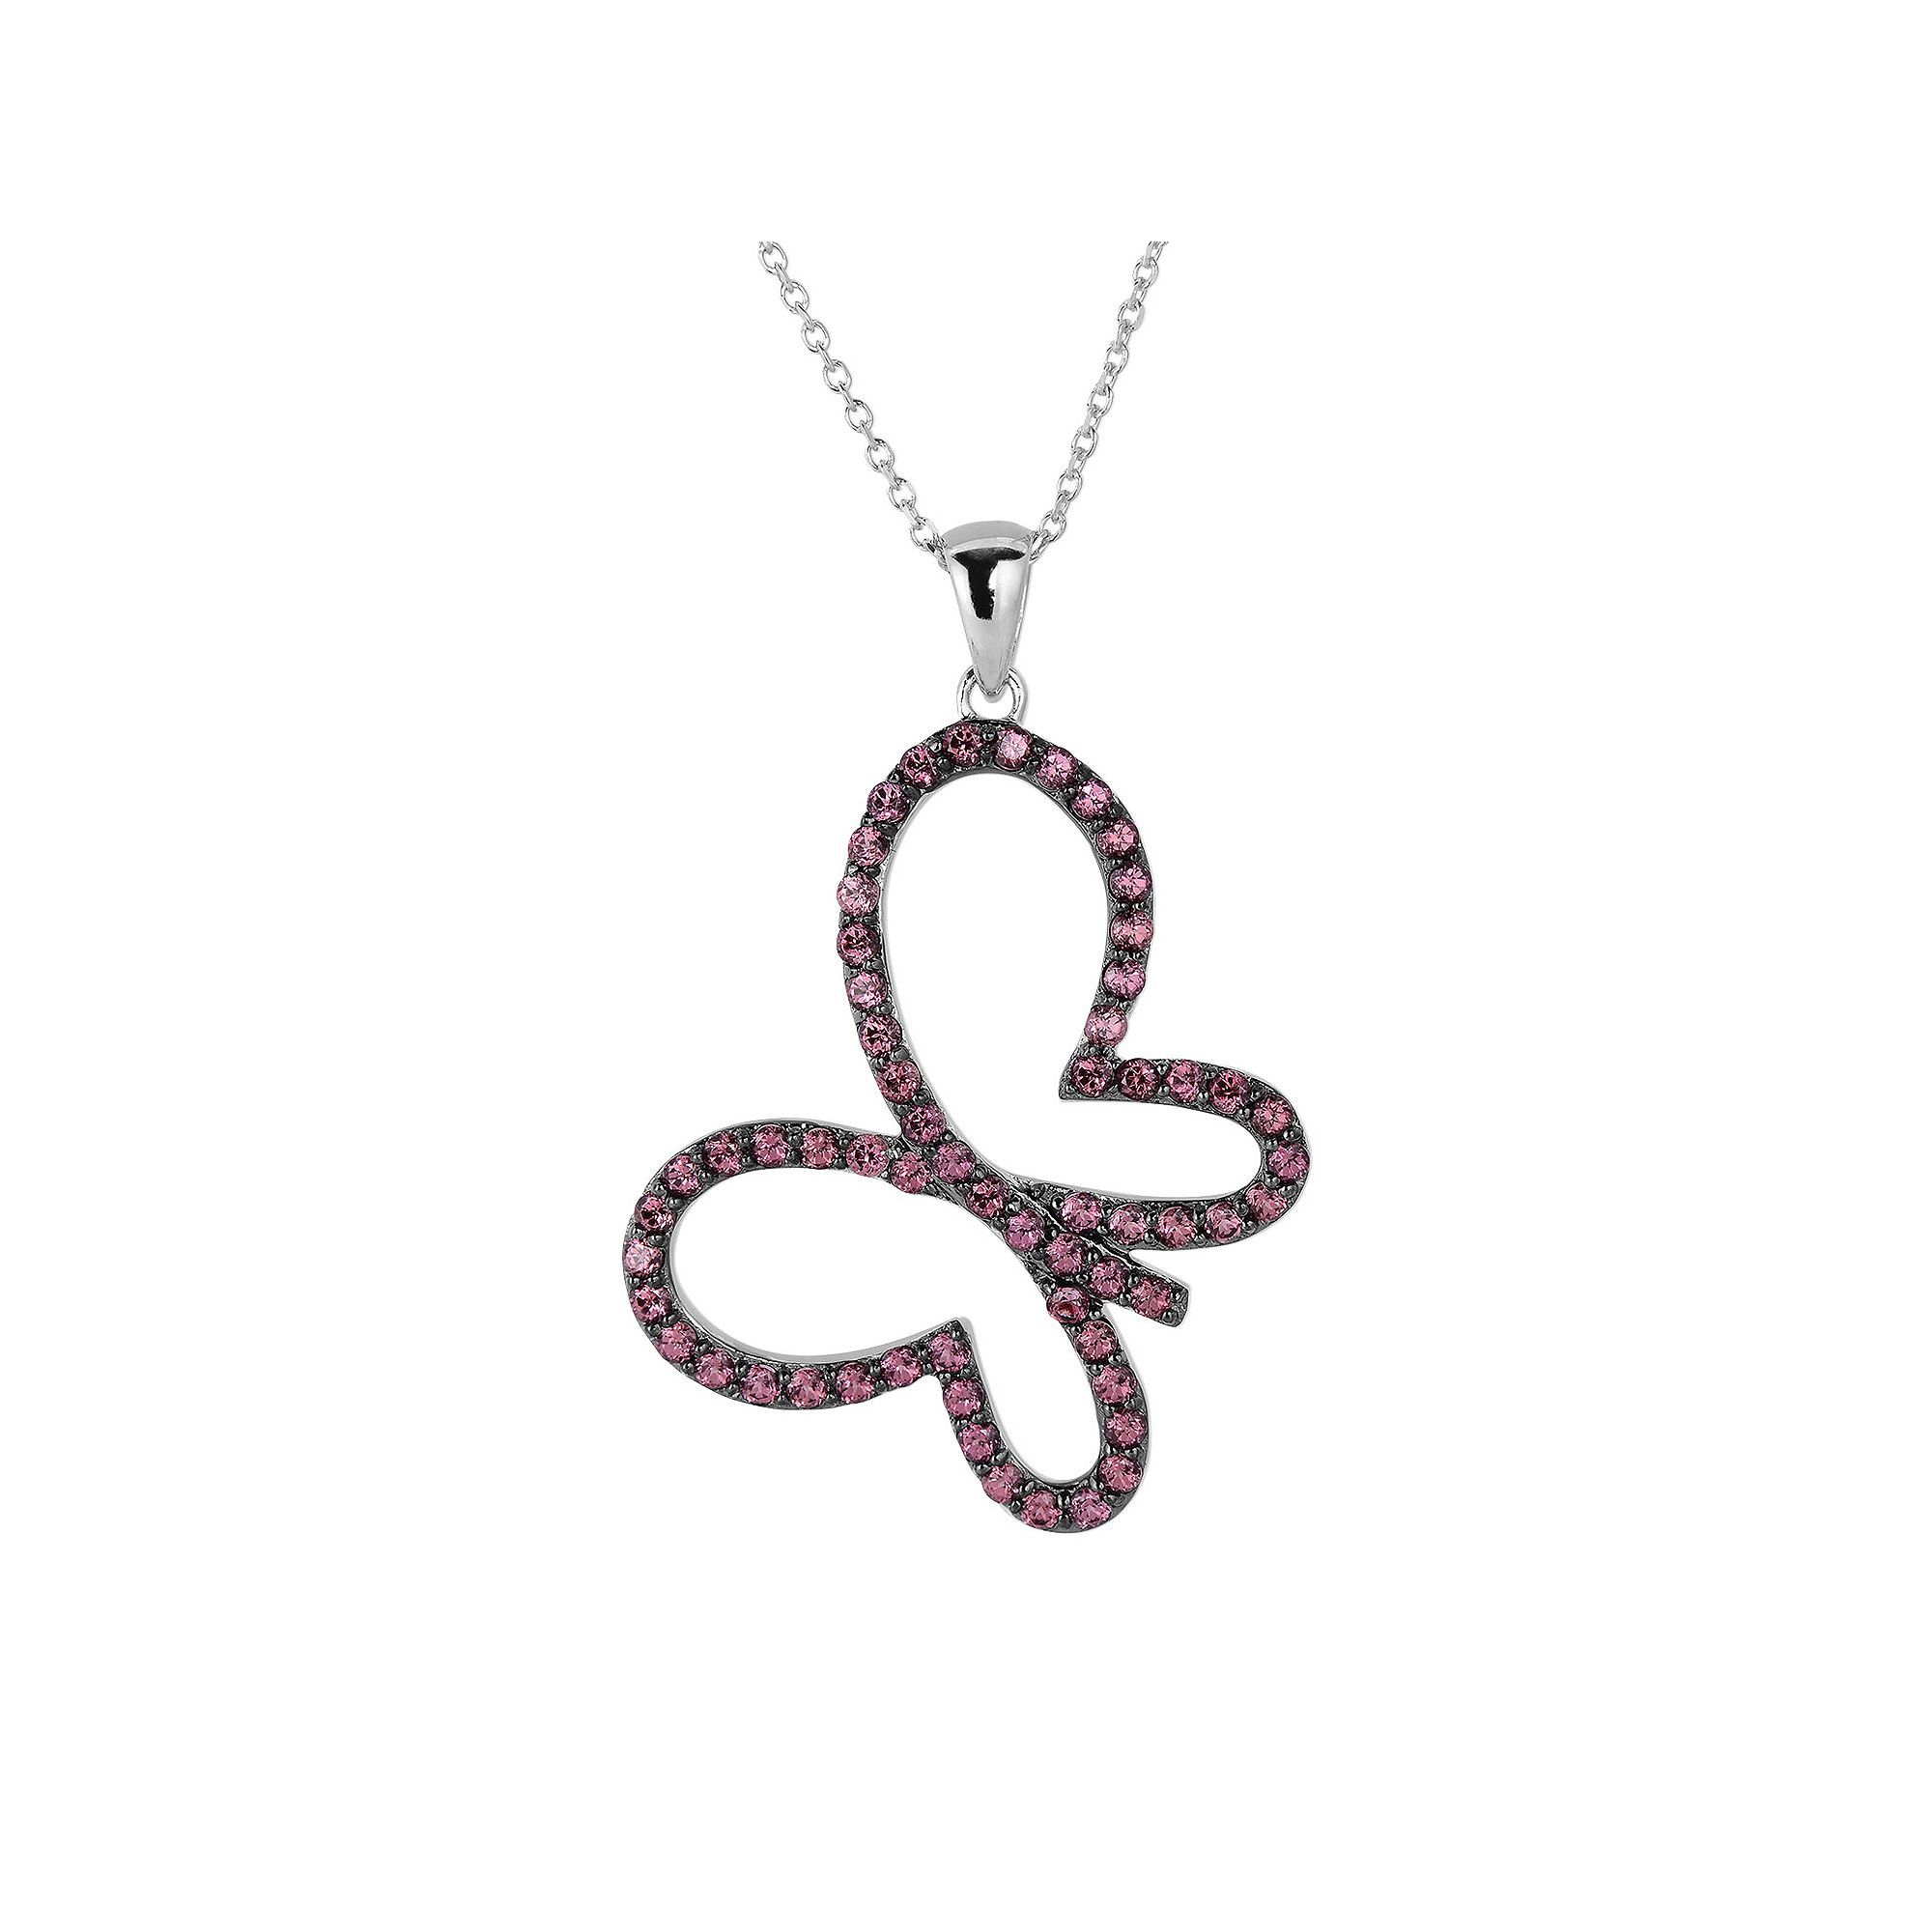 jewelry of library pointe garnet rhodolite collections virtual sandi pendant